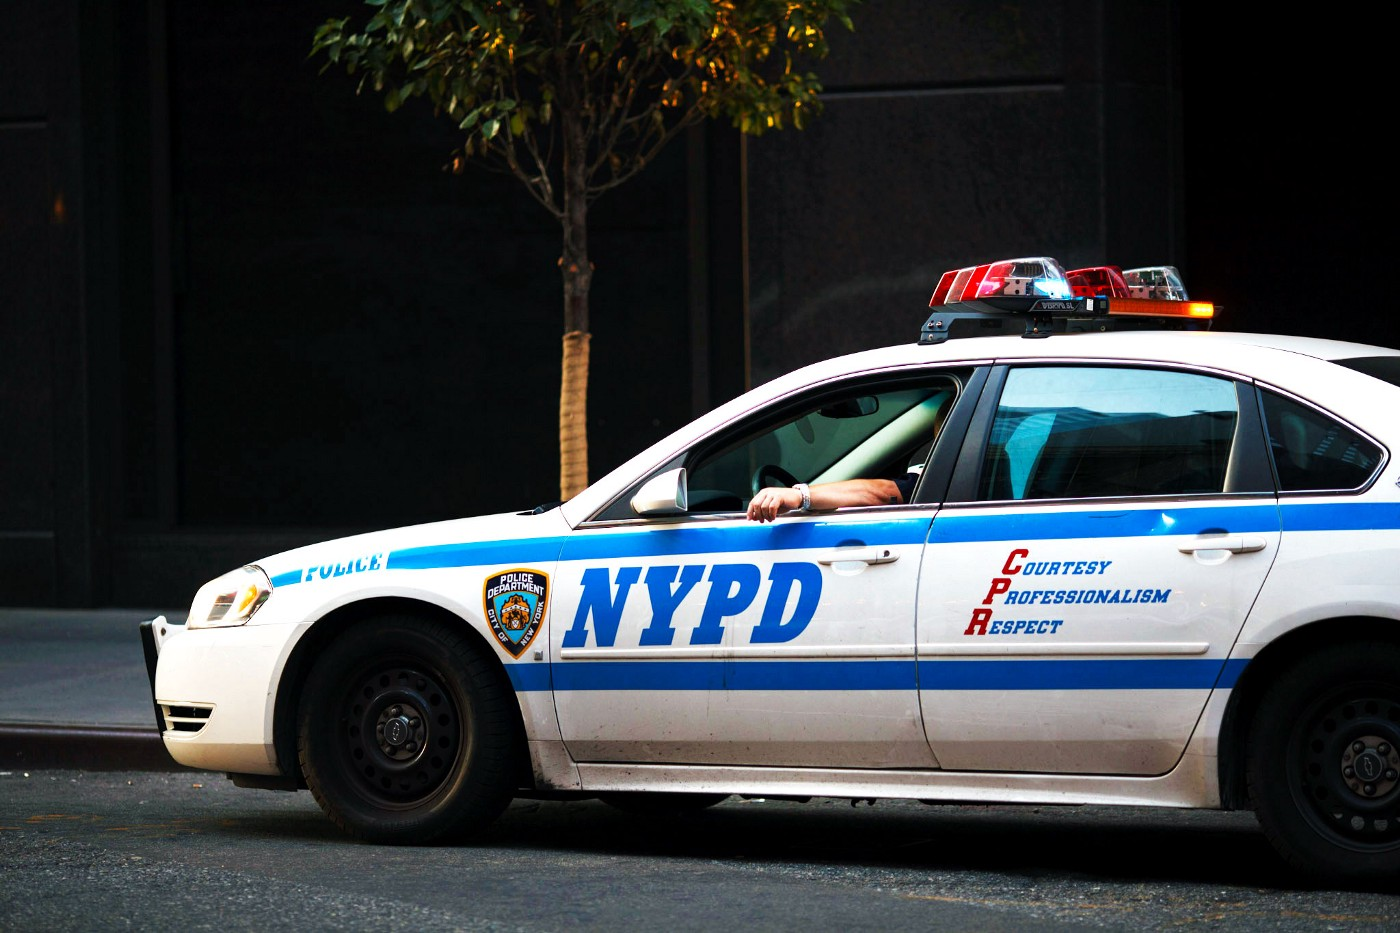 White NYPD police sedan sits at the curb